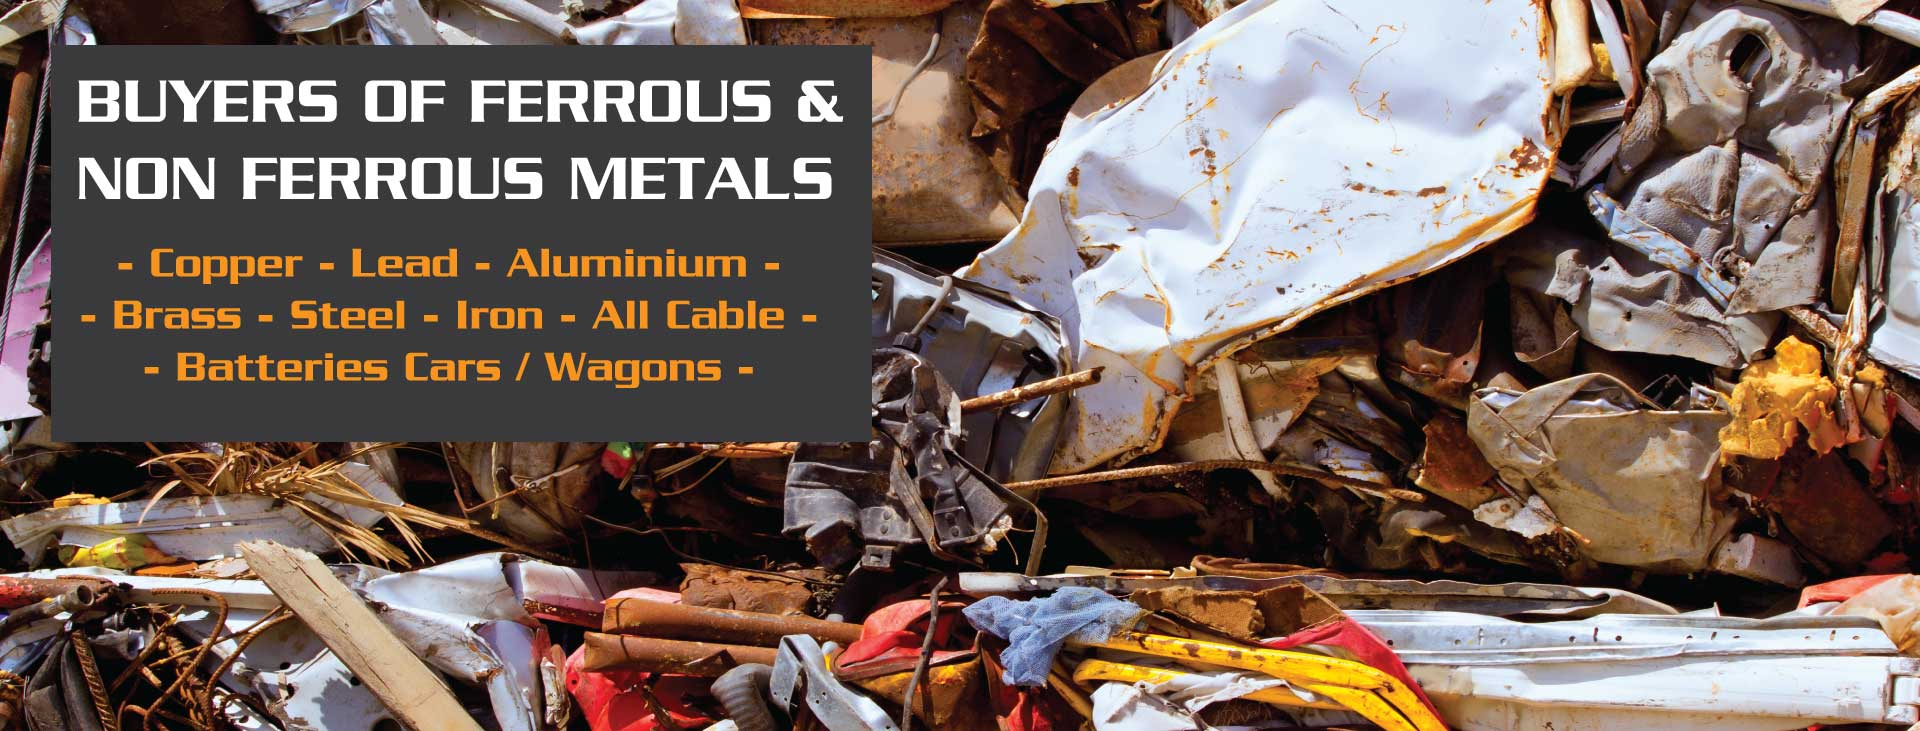 Halifax Metals - BUYERS OF FERROUS & NON FERROUS METALS